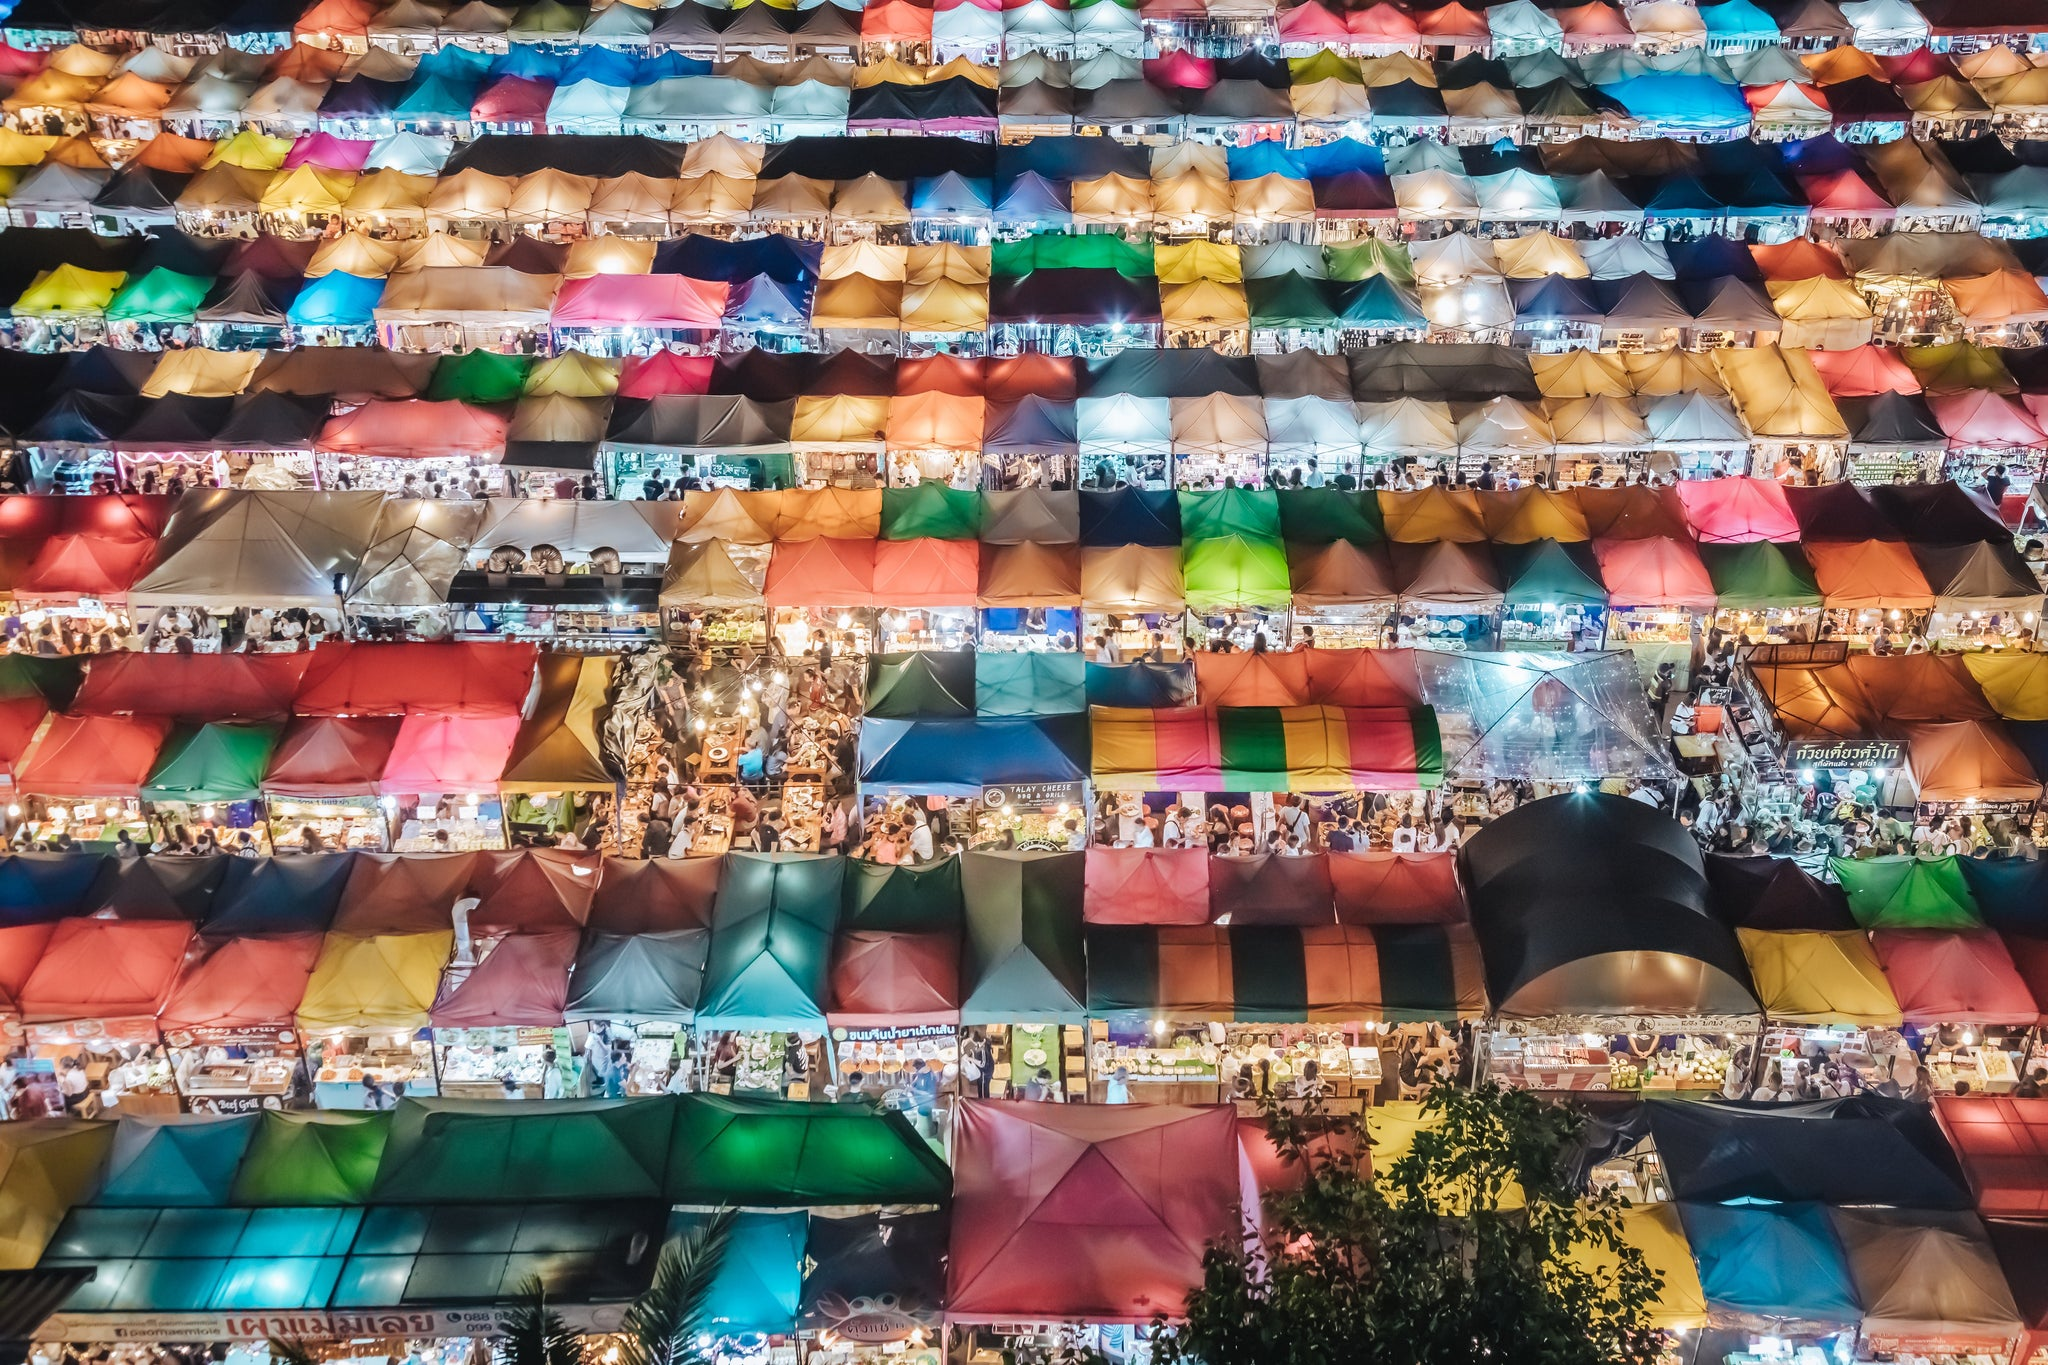 Ratchada Night Market from above, Bangkok, Thailand